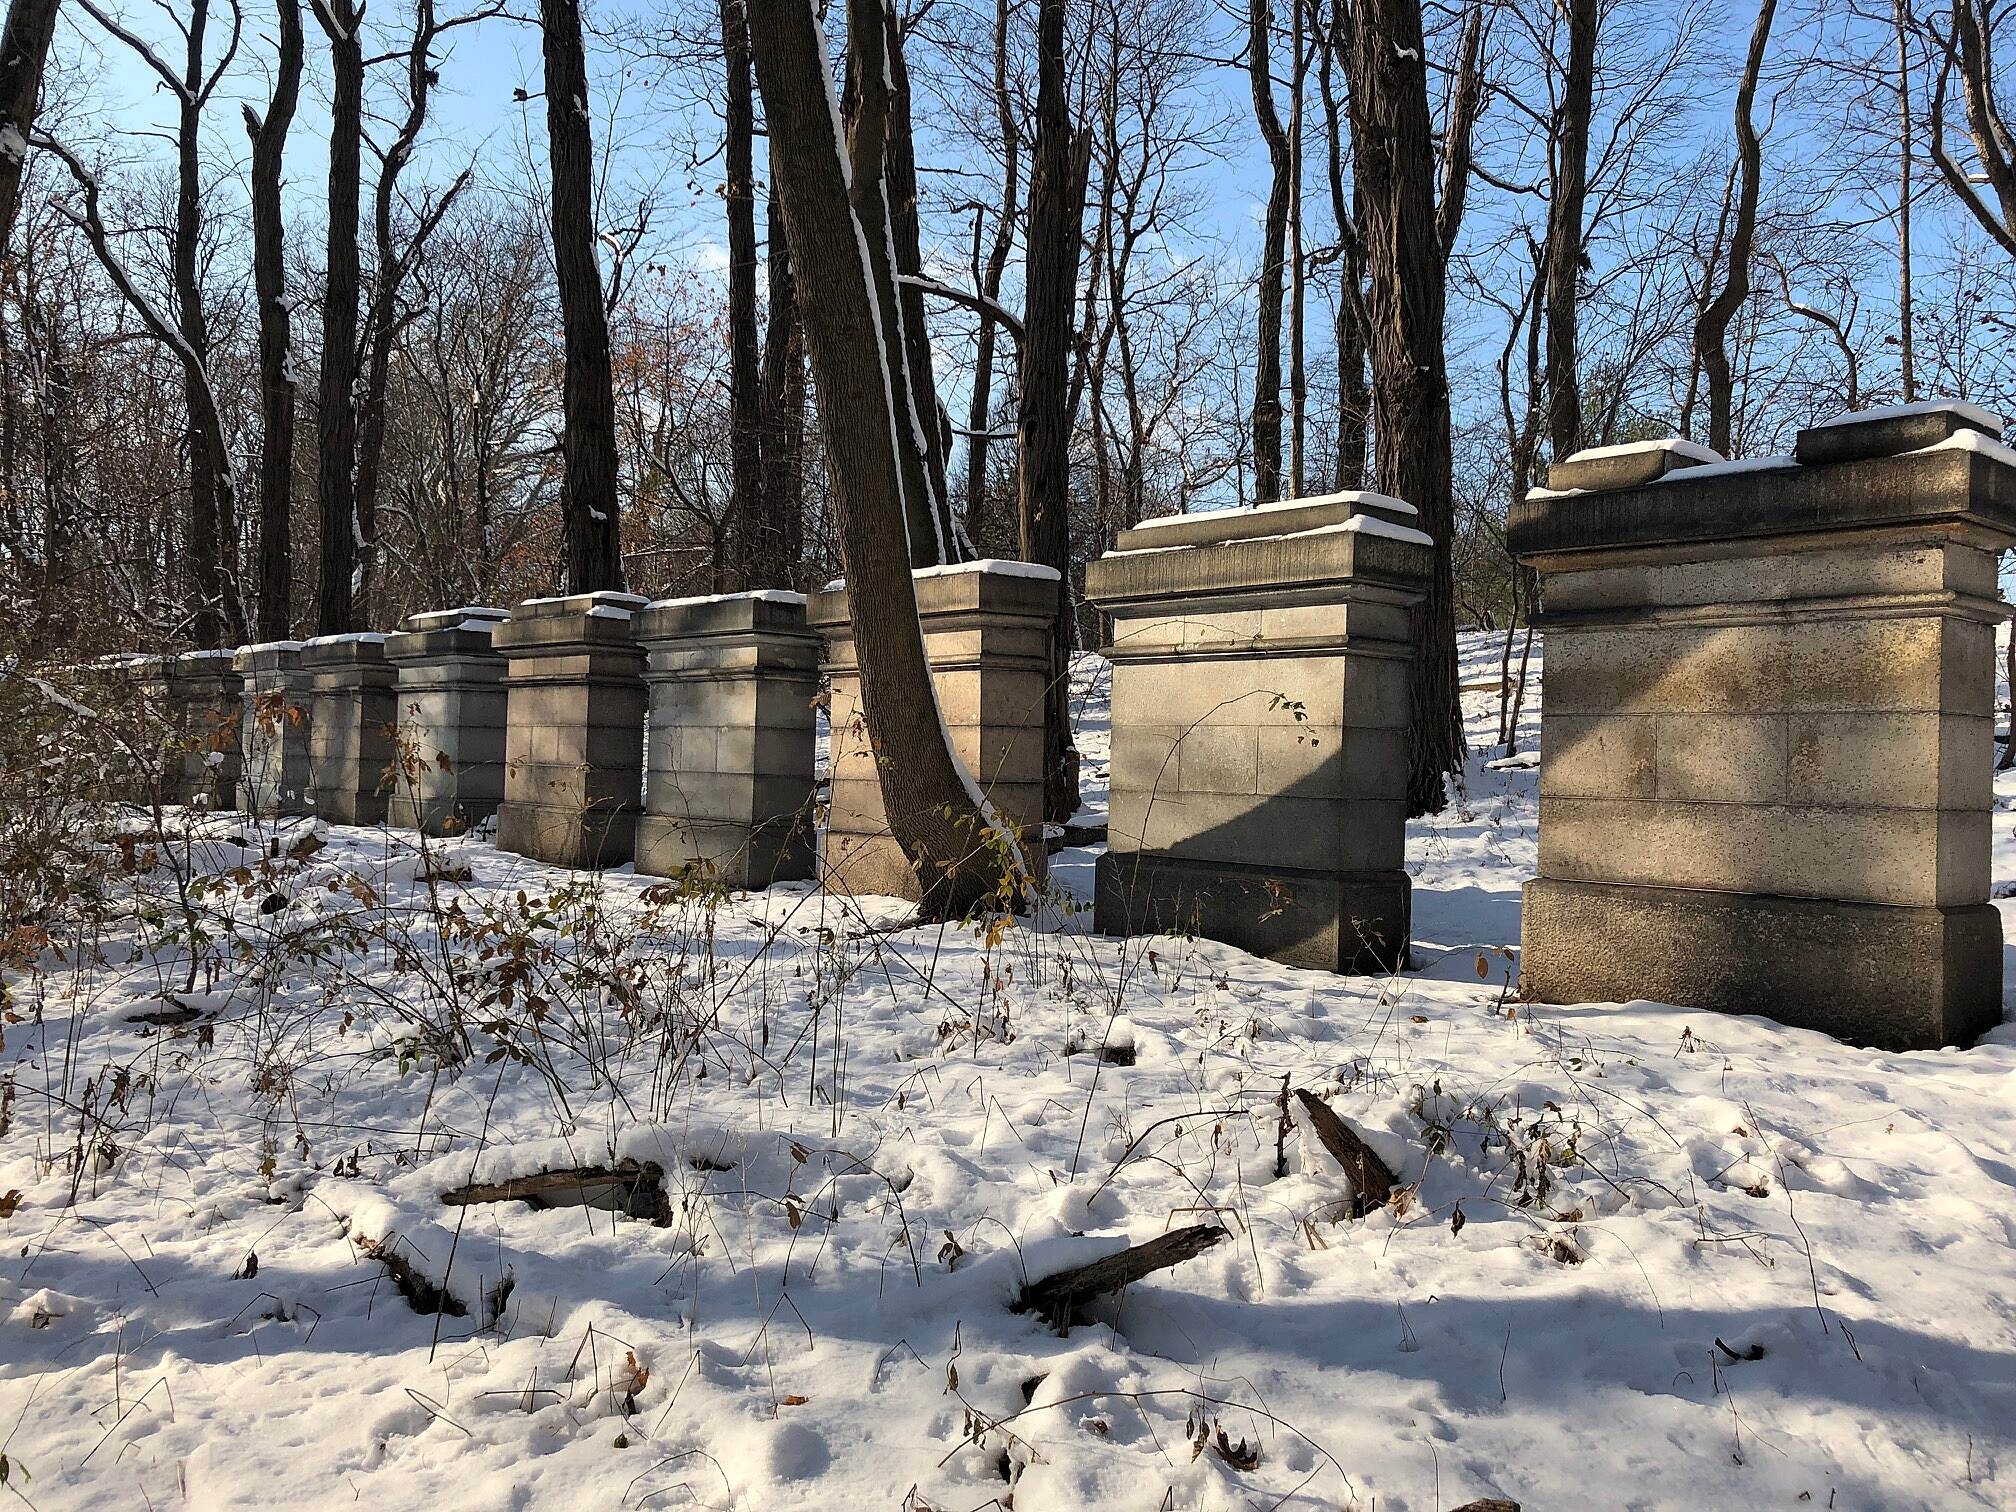 Old Putnam Trail Grand Central Stones Grand Central Stones in the snow.  December 2017